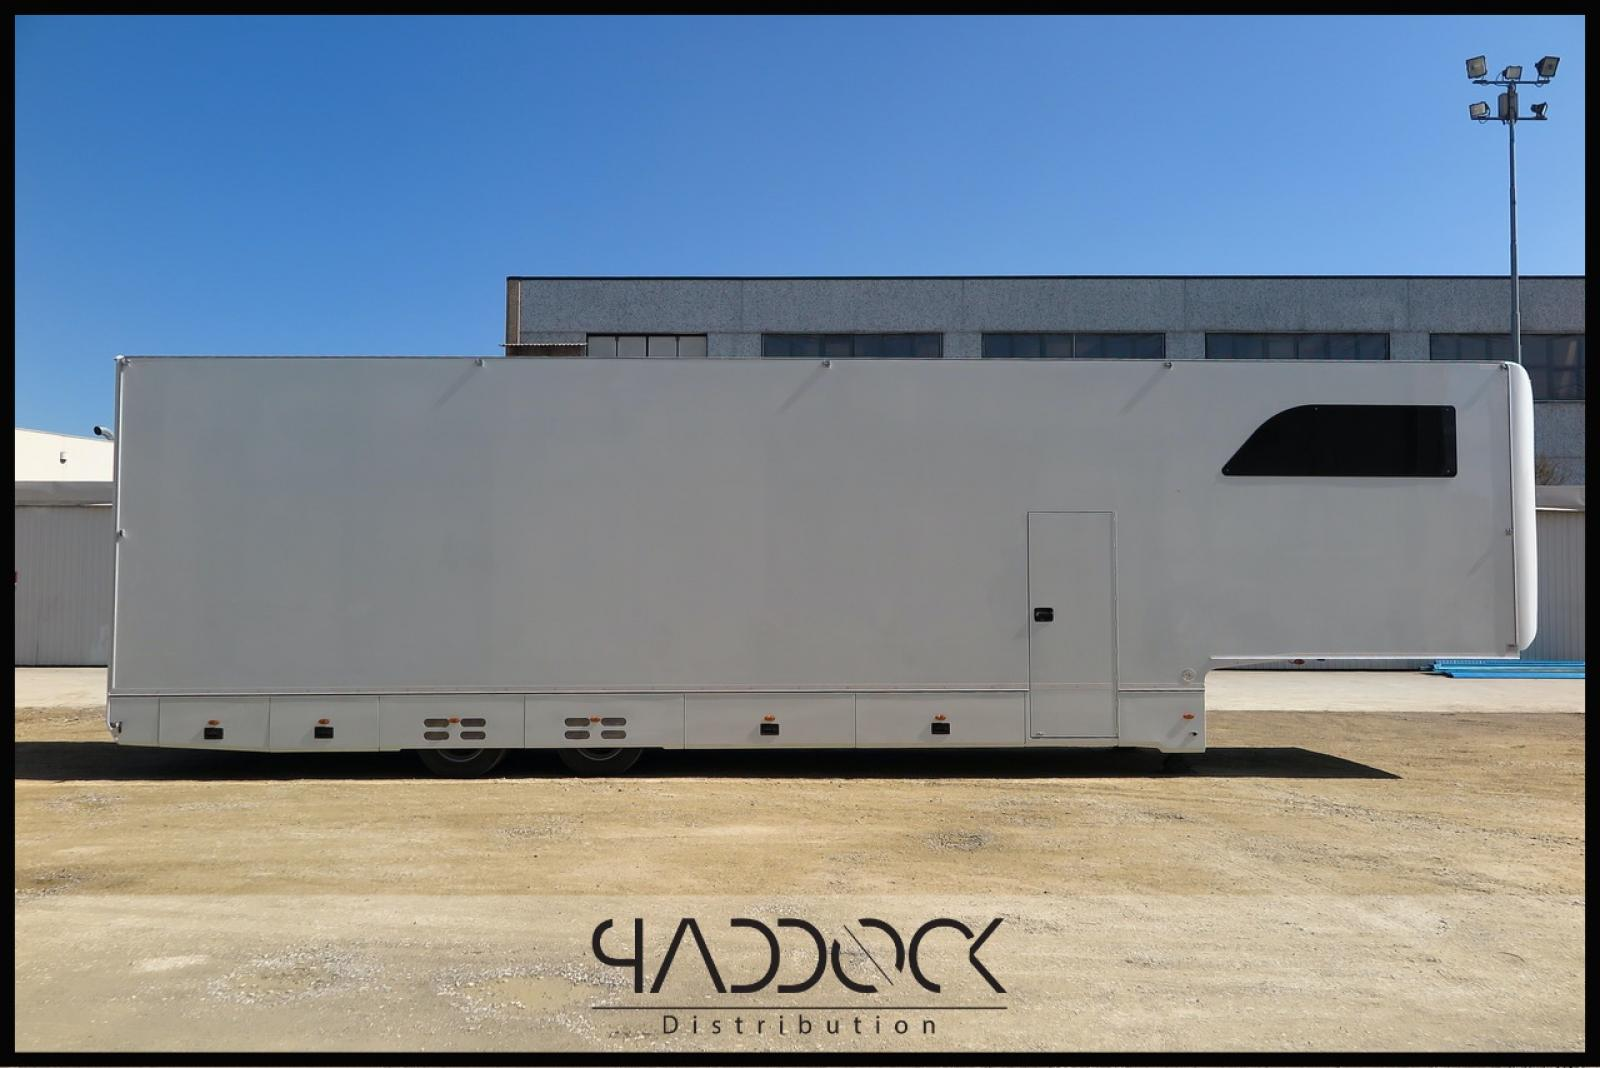 USED TRAILER ASTA CAR Z2 BY PADDOCK DISTRIBUTION - 1